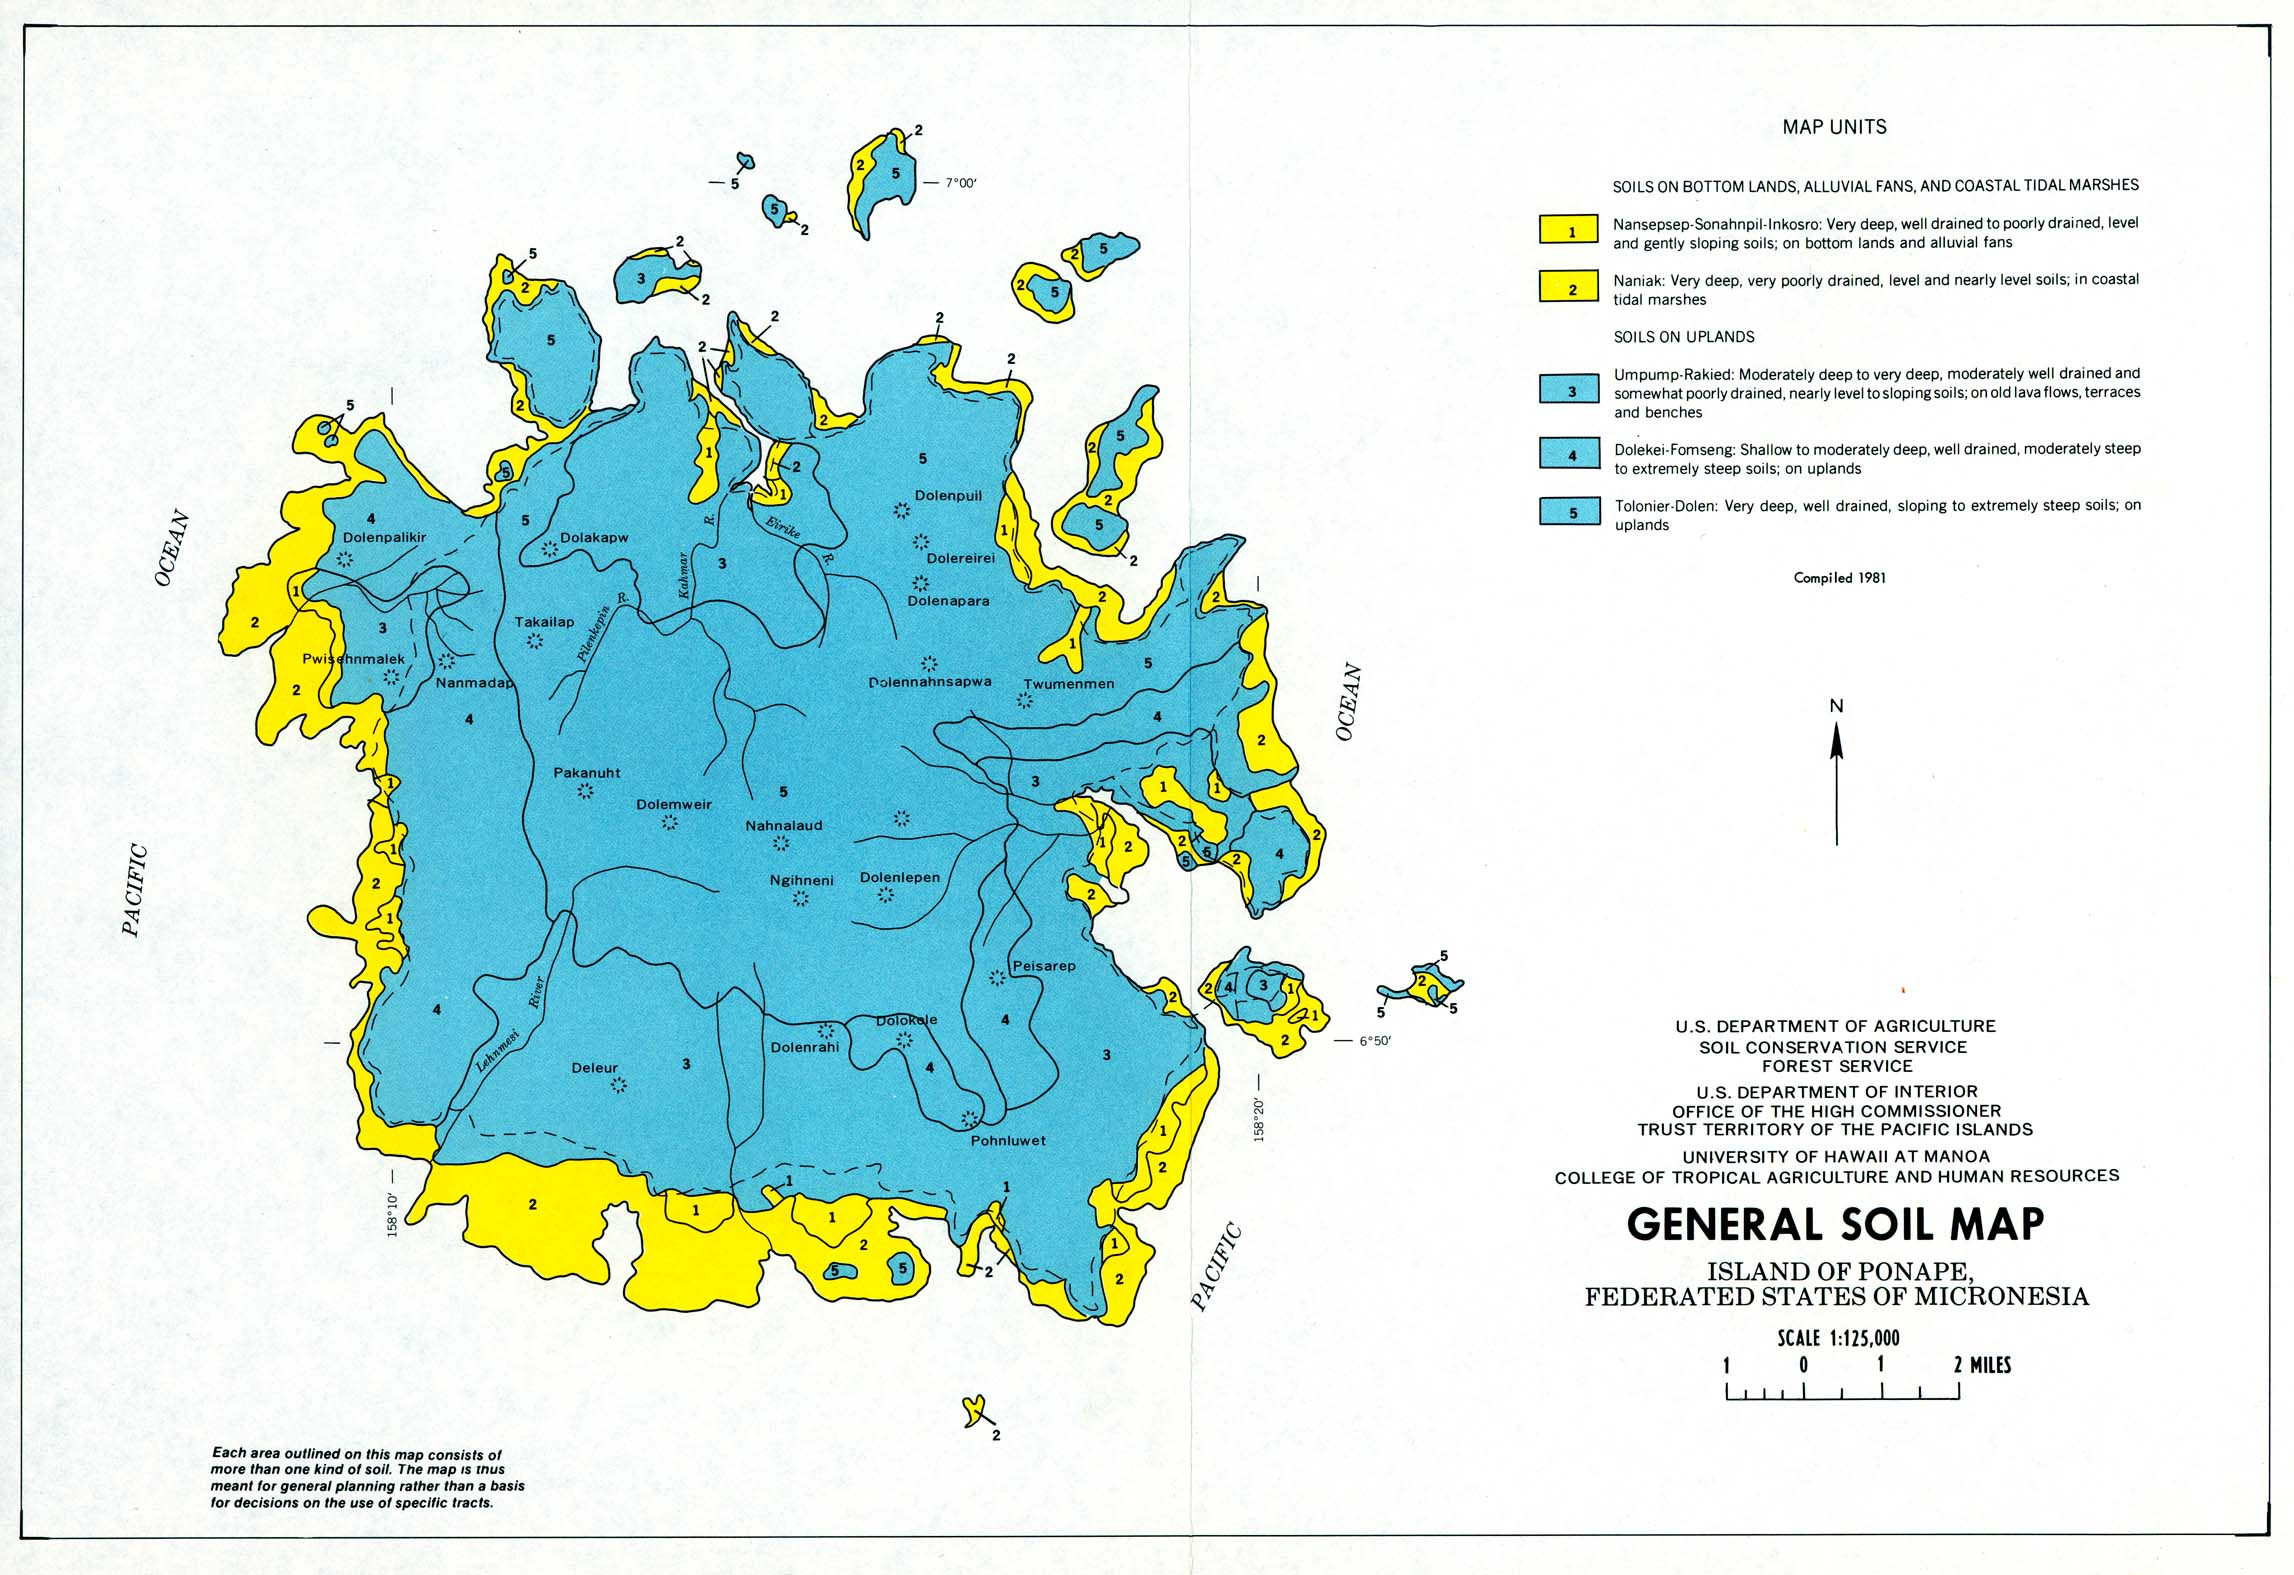 Micronesia maps perry castaeda map collection ut library online ponape island general soil map united states publicscrutiny Images